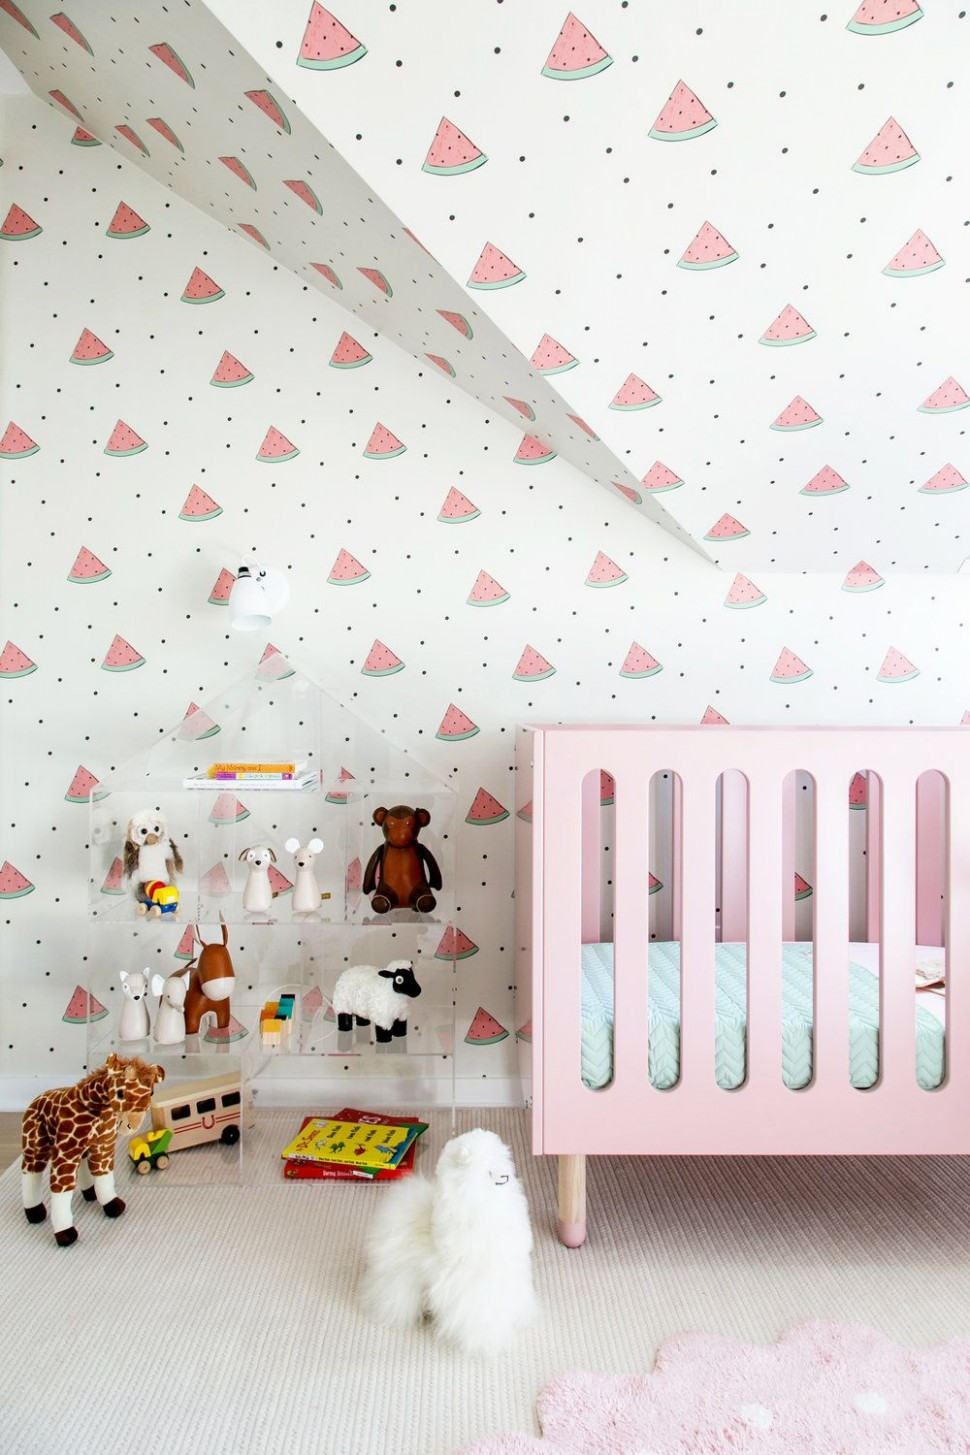 12 Cute Nursery Decorating Ideas - Baby Room Designs for Chic Parents - Baby Room Pictures